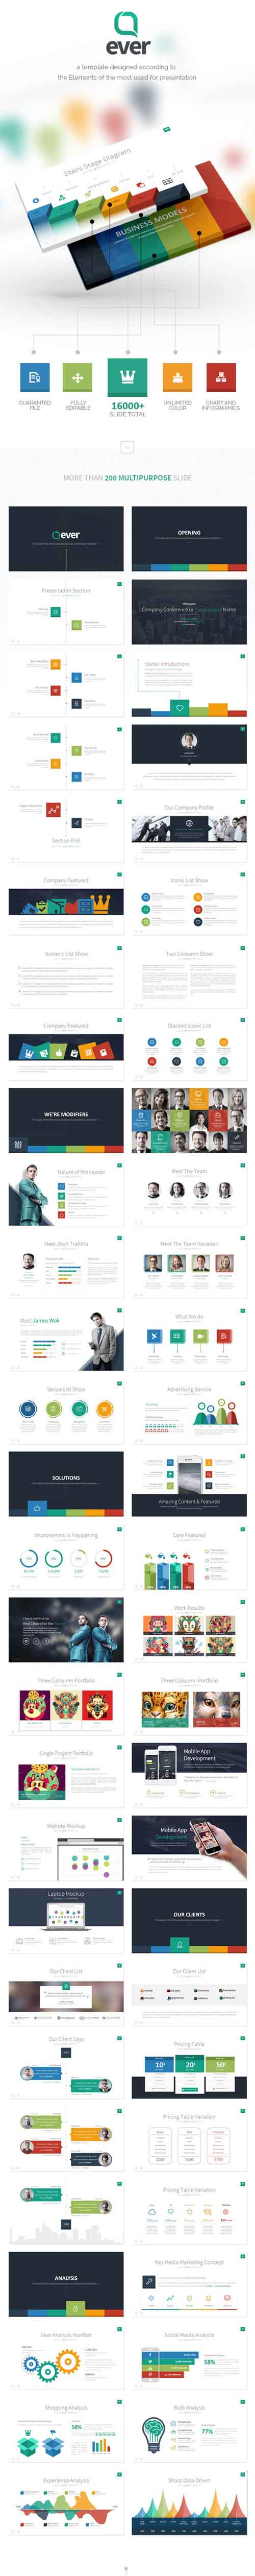 Ever - Multipurpose Presentation Keynote Template 9259052